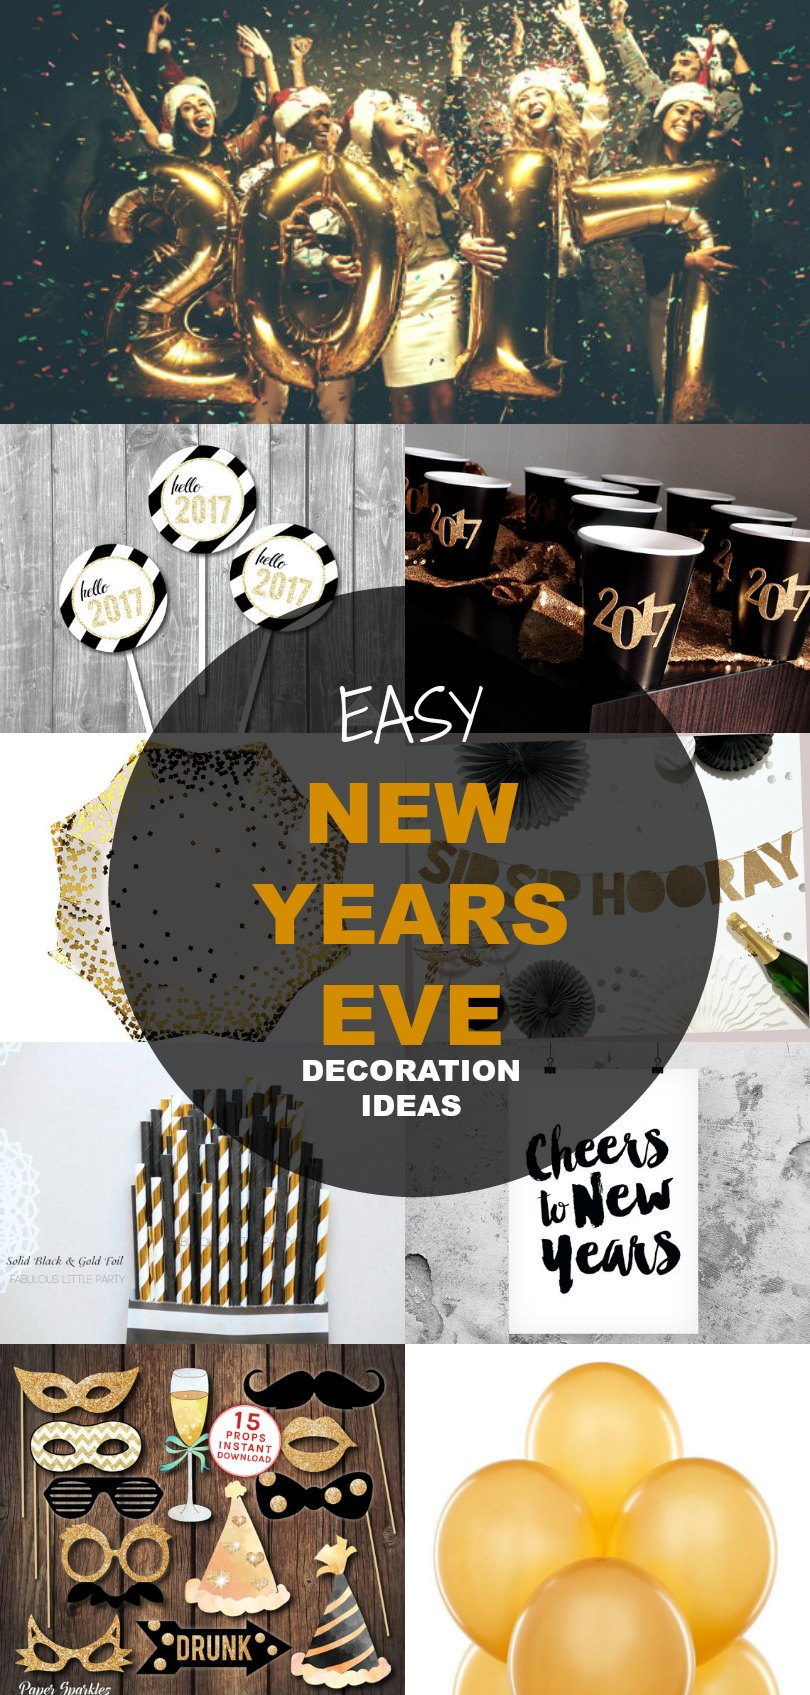 Fantastic New Years Eve Decoration Ideas New Years Eve Decoration Ideas On Cutting Printable New Years Eve Decorations Ideas New Years Eve Decorations 2016 decor New Years Eve Decorations